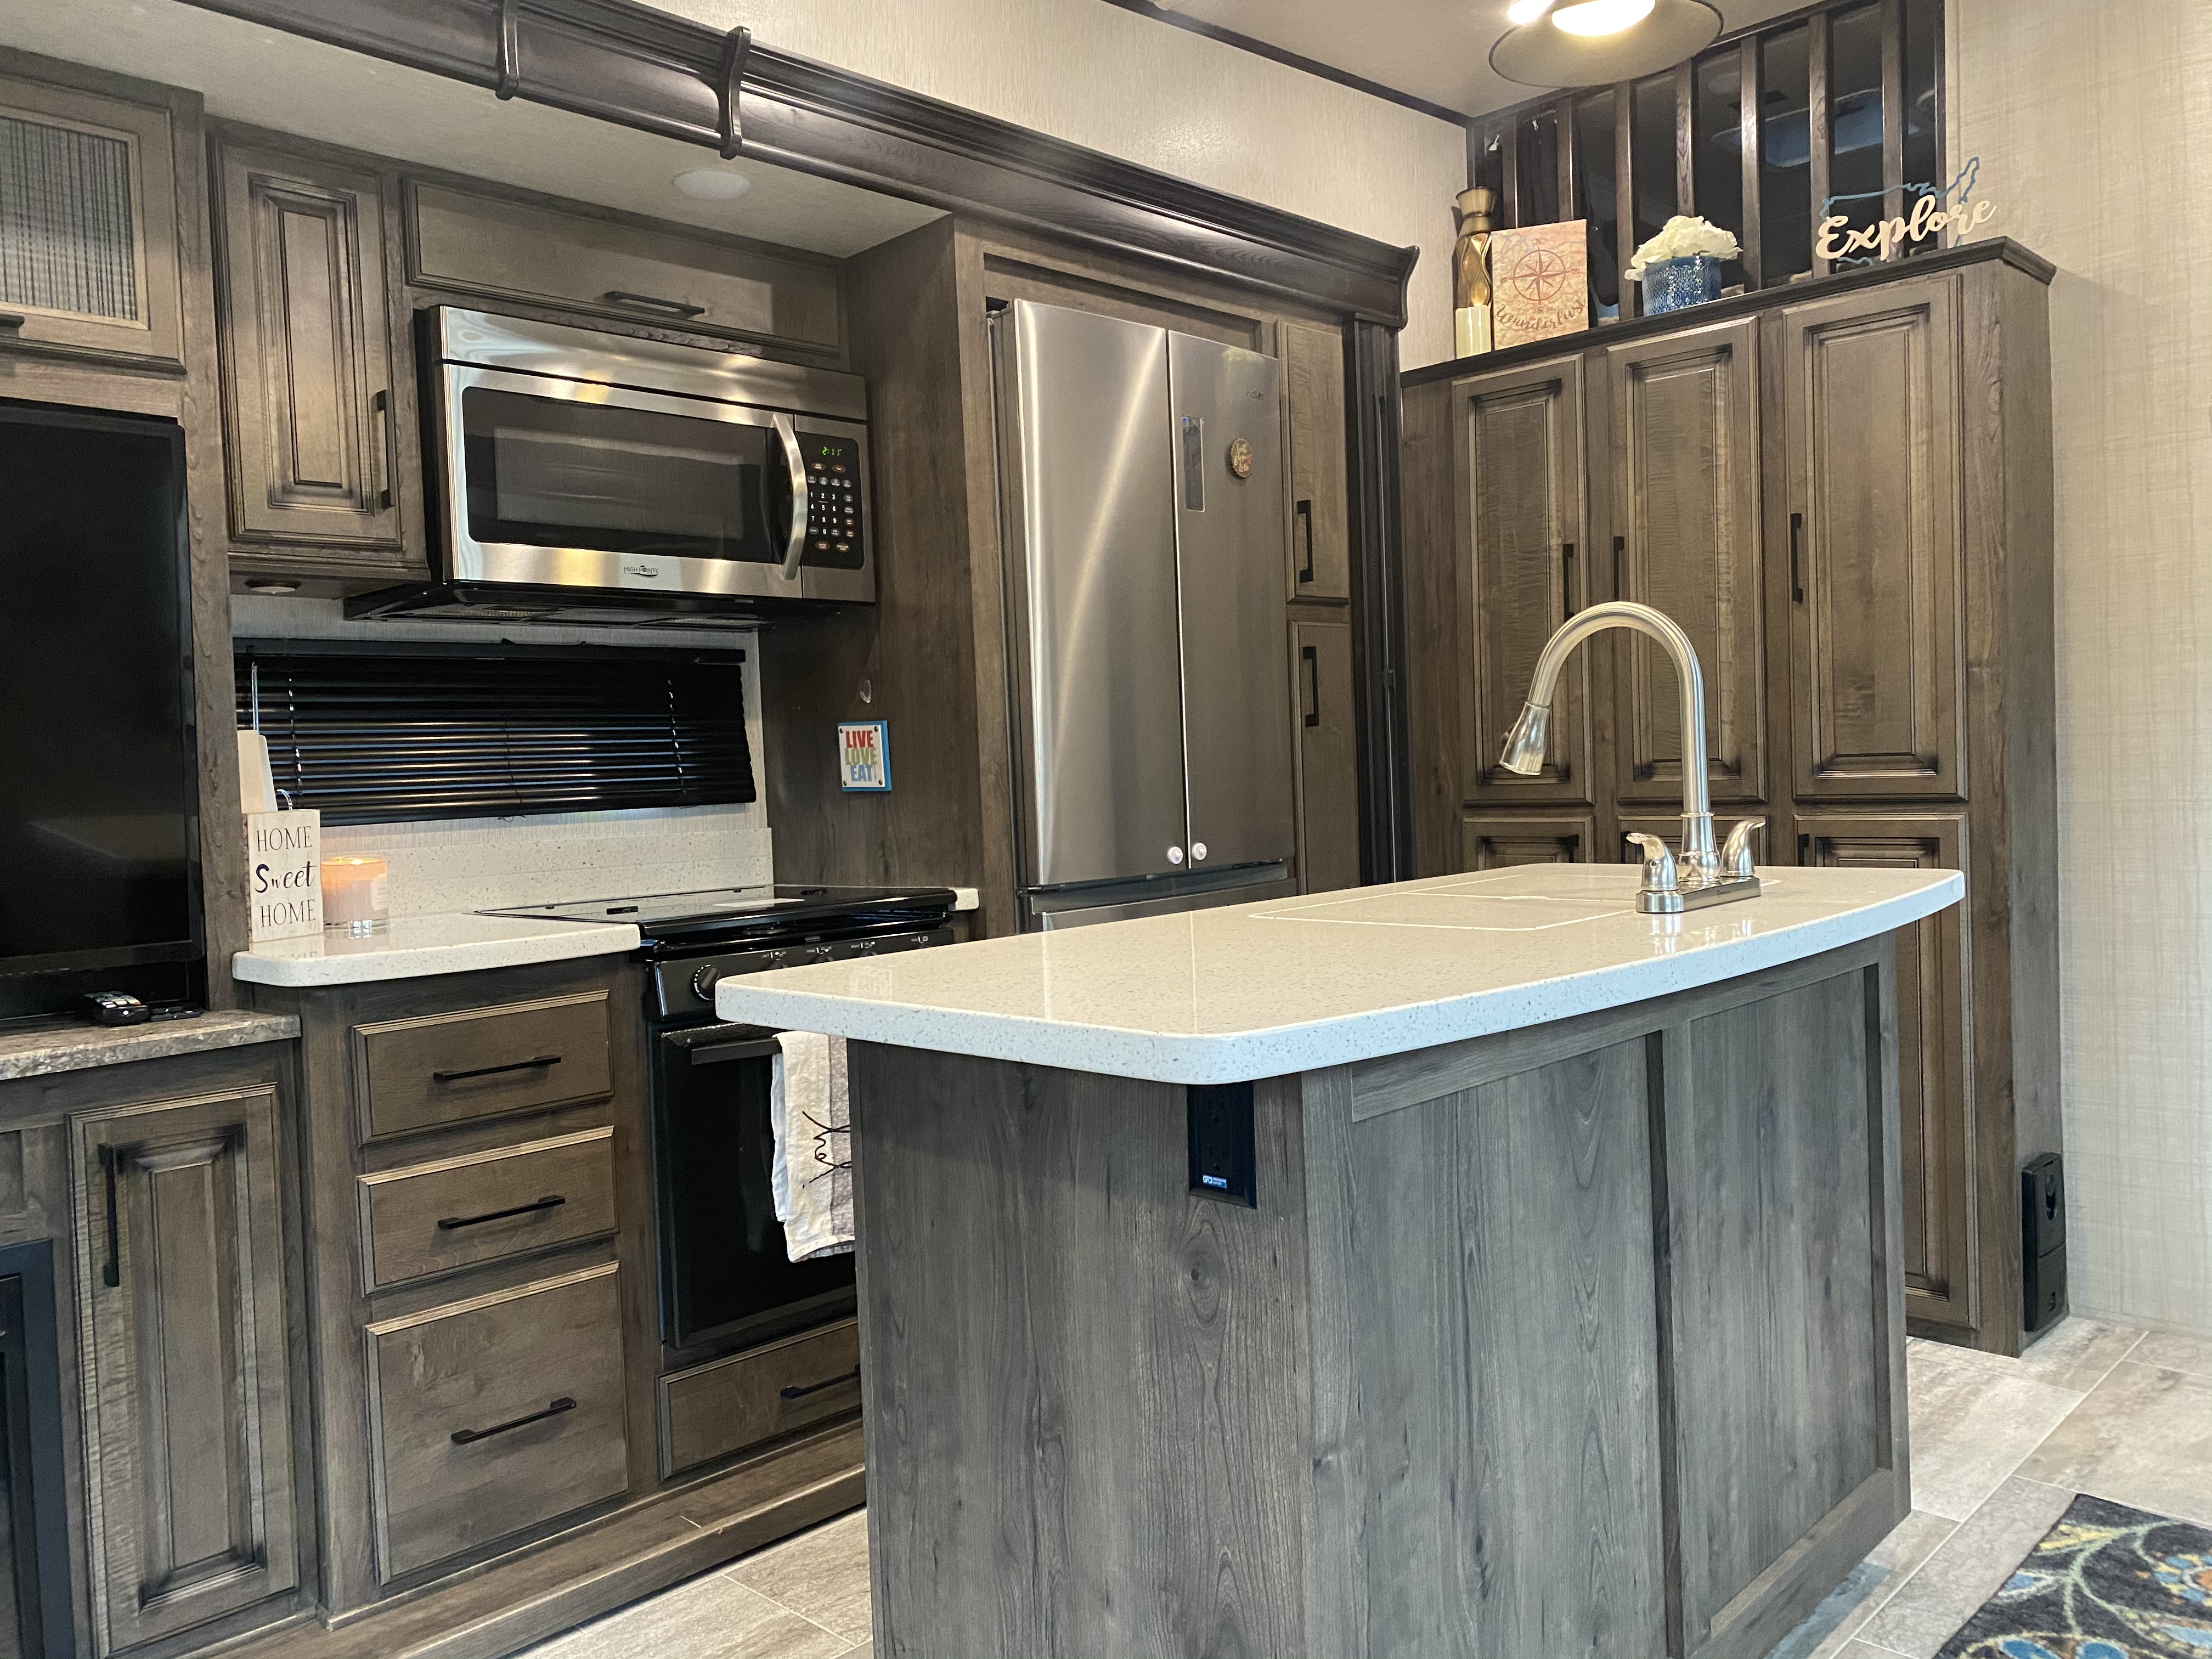 Kitchen island and solid surface counter tops provide plenty of space for food preparation. Did you see the residential fridge?. Heartland Gateway 2019